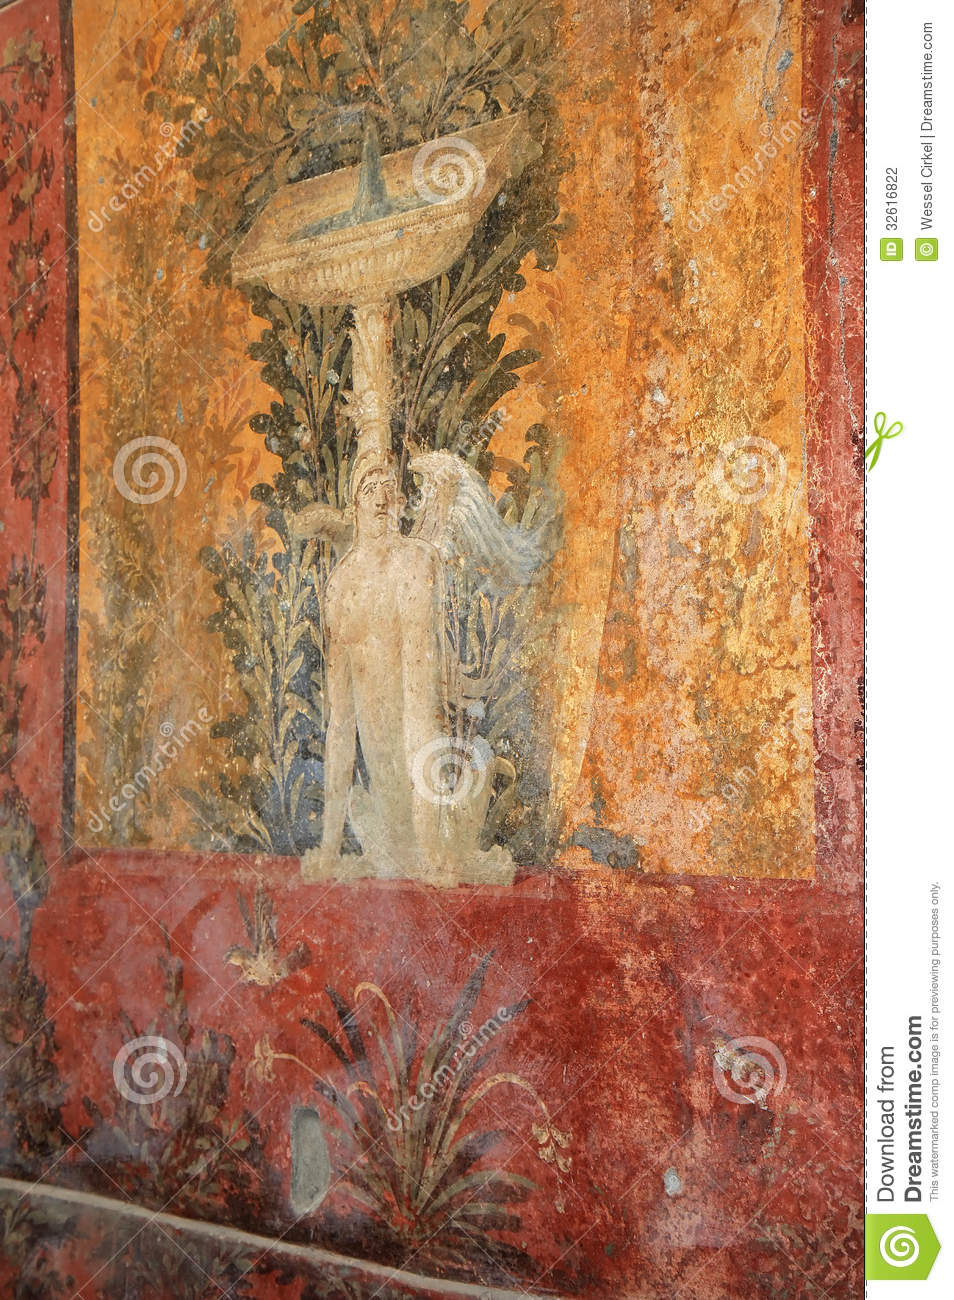 Fountain mural in the roman villa poppaea italy stock for Ancient mural villa